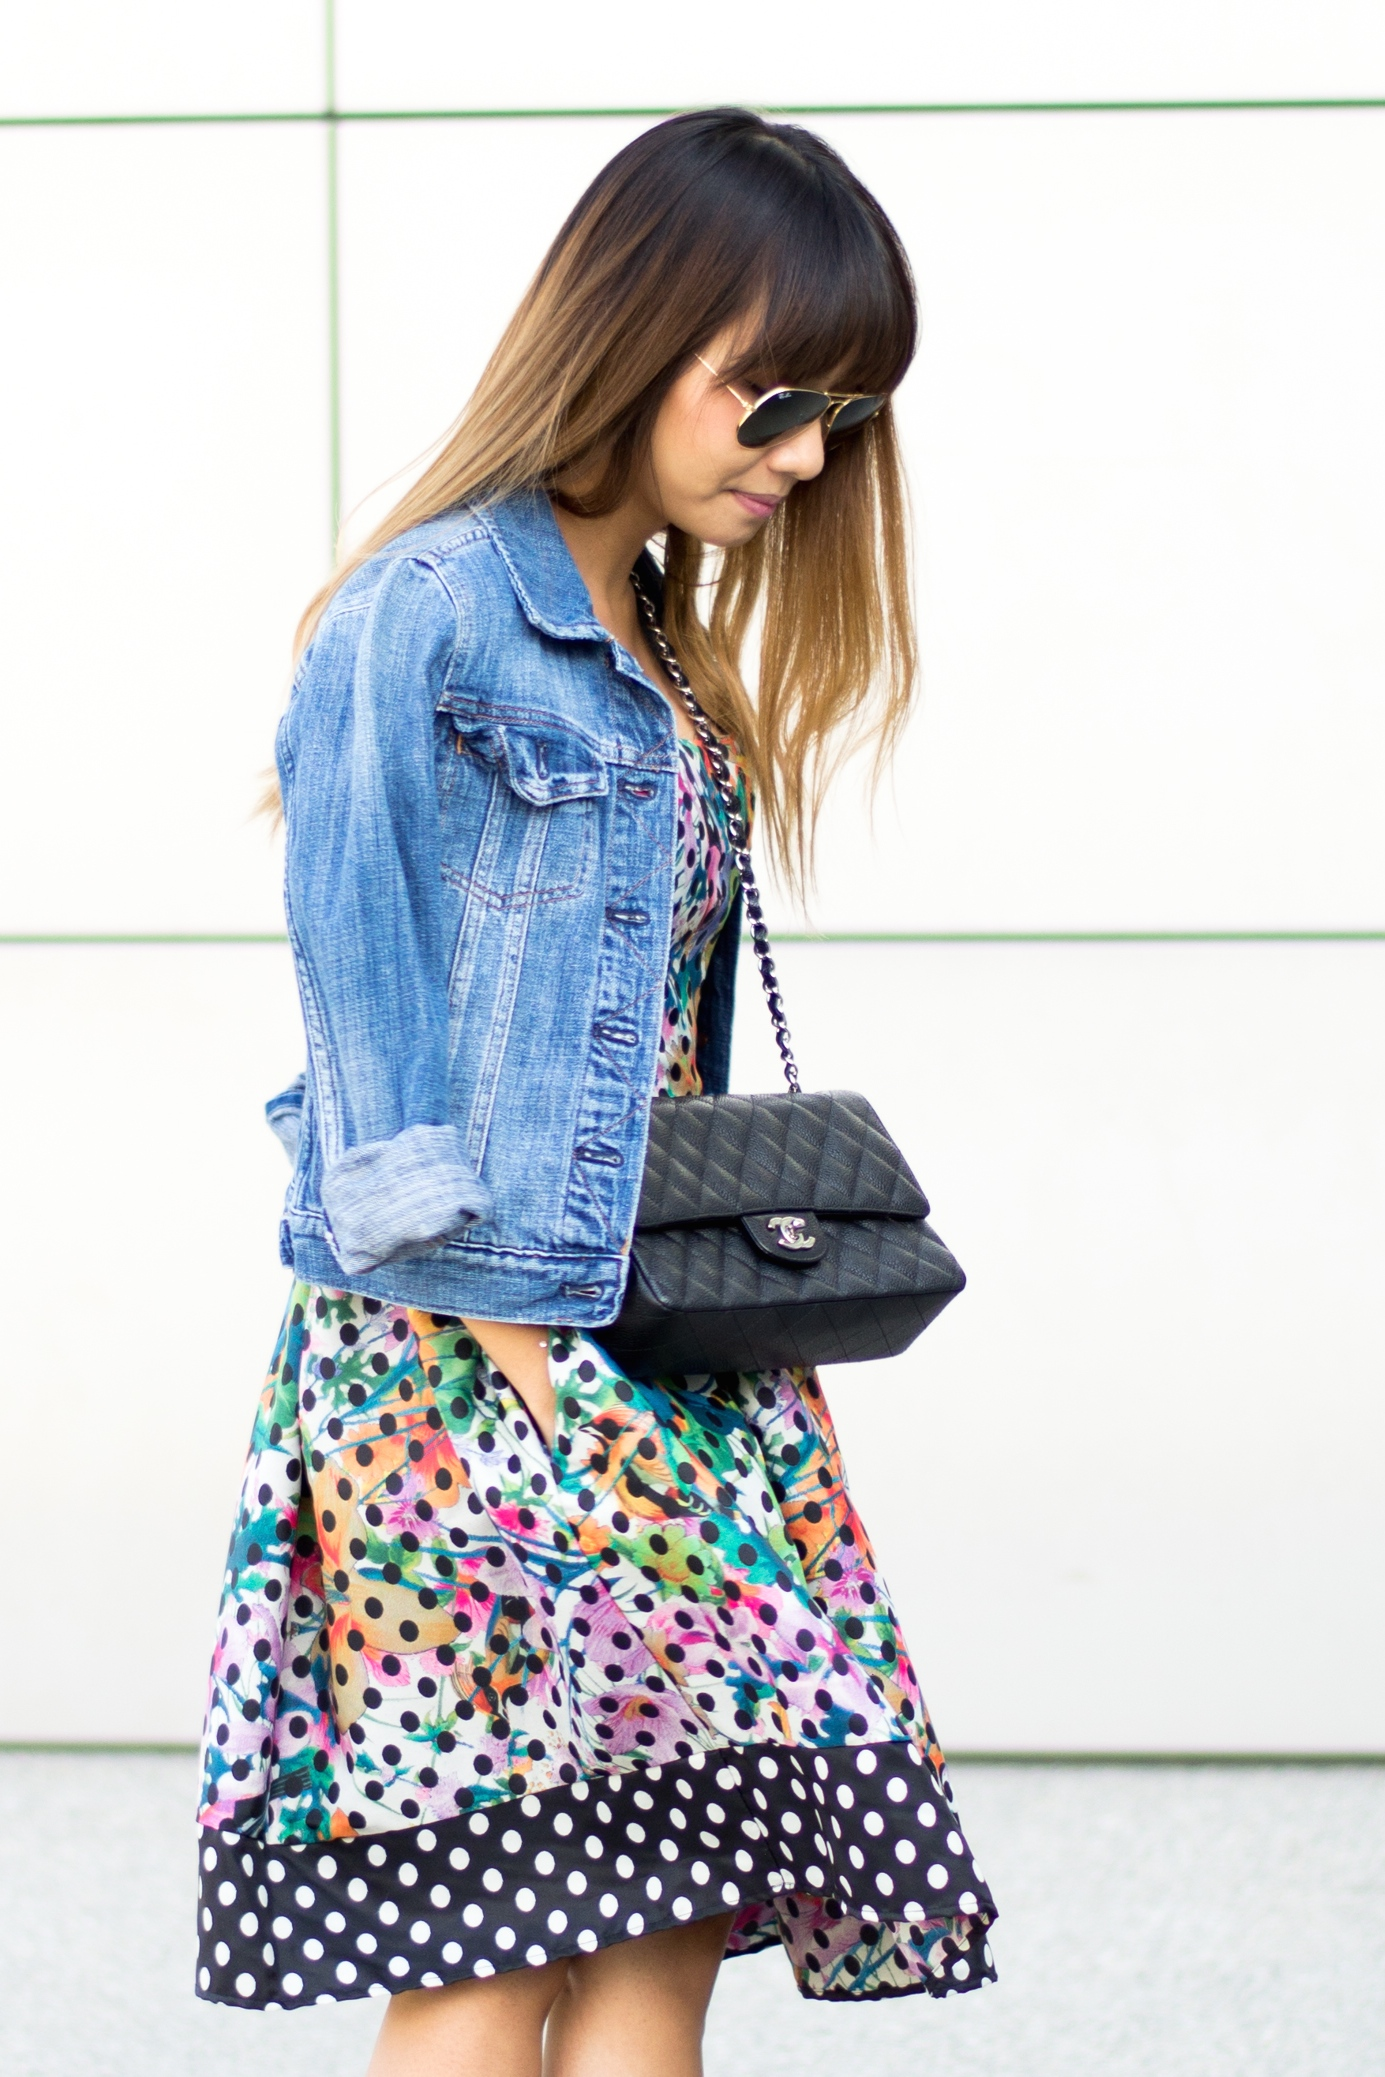 Color Polka Dots (10 of 10)_cropped